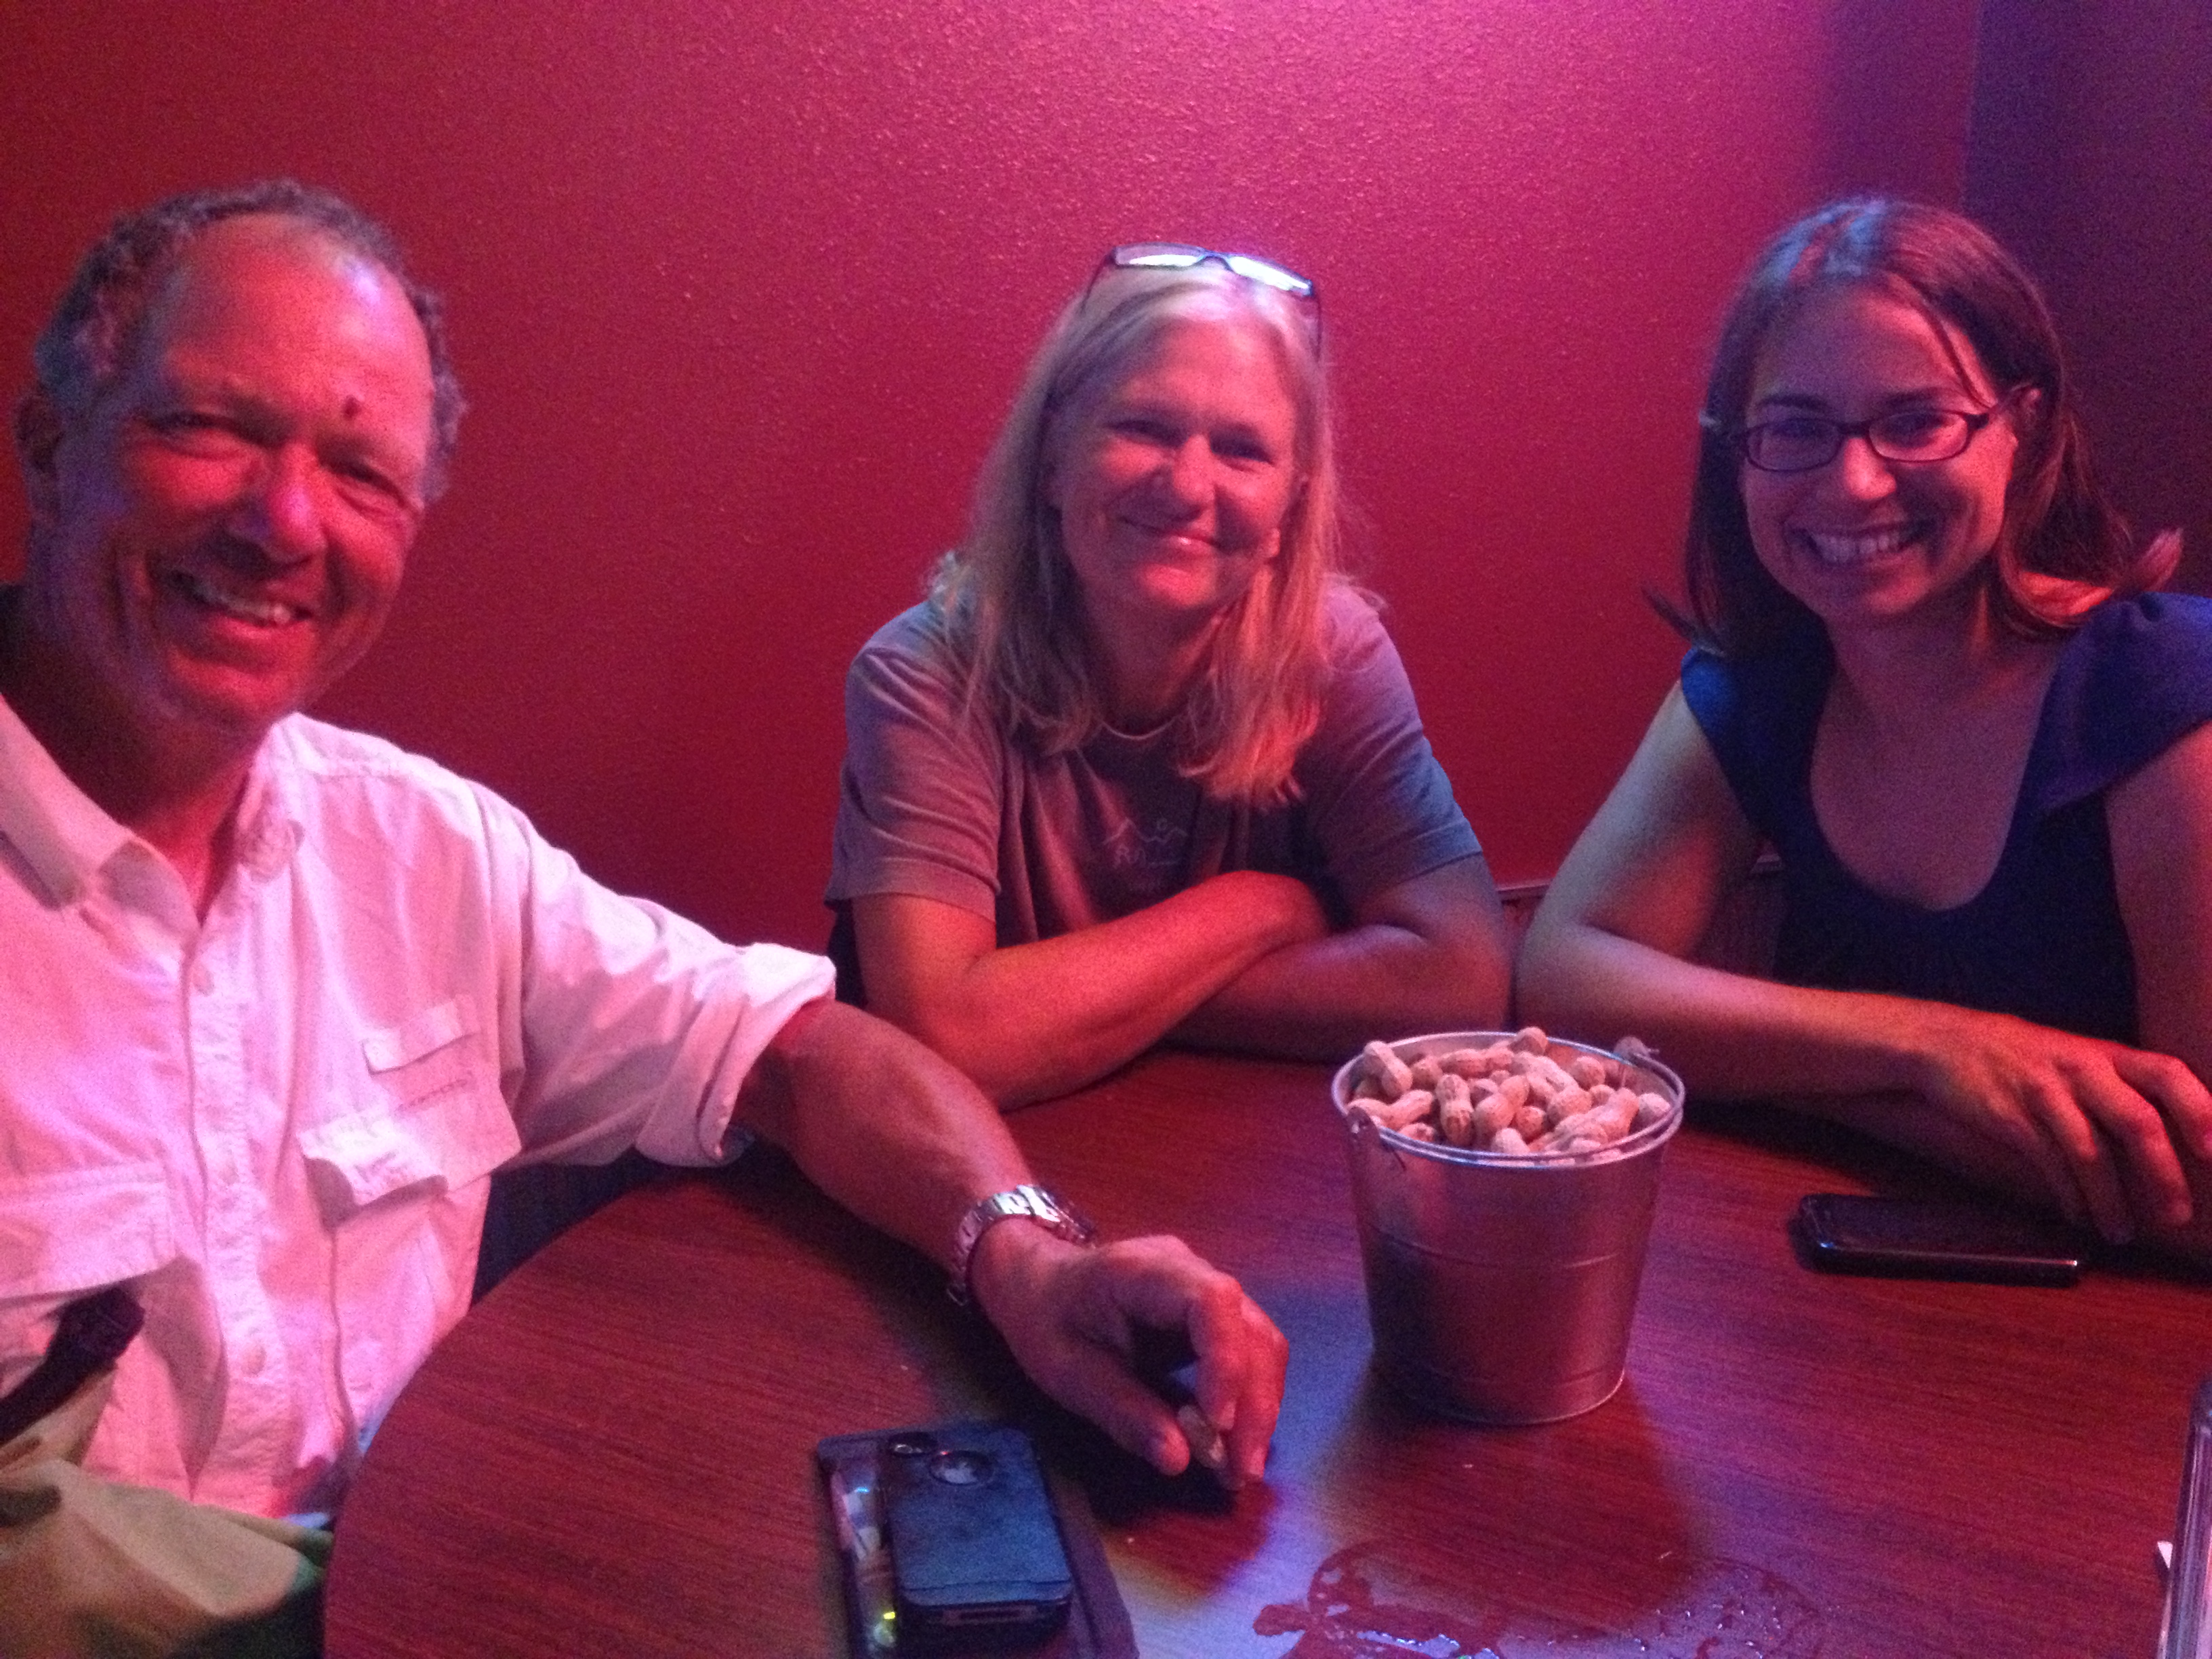 David Forbes, me, and Jessica Andrews Giard enjoying dinner together at the Marina in Chamberlain, SD.